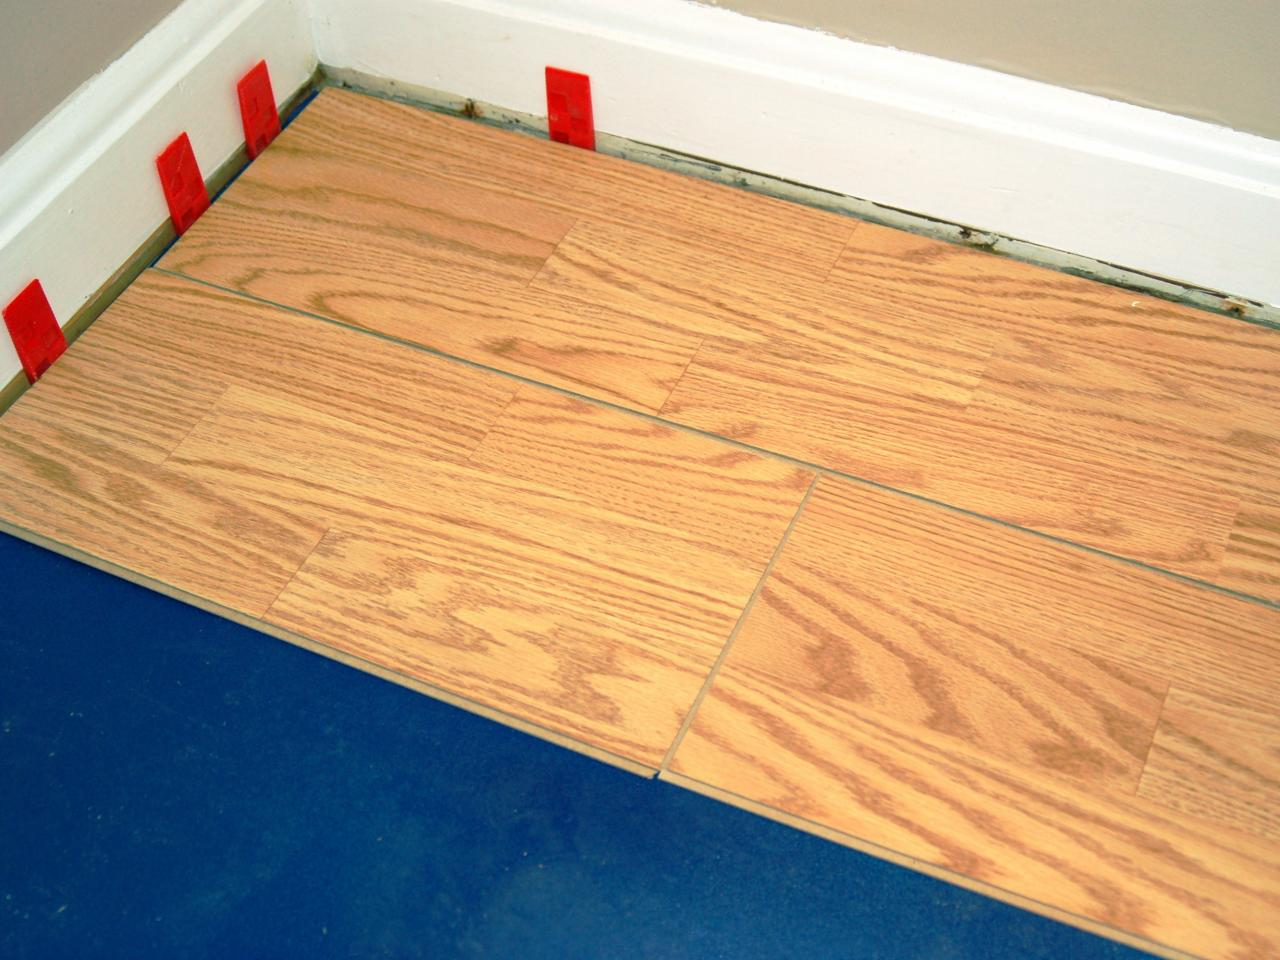 How To Install A Laminate Floating Floor Howtos DIY - Install vinyl flooring over plywood subfloor